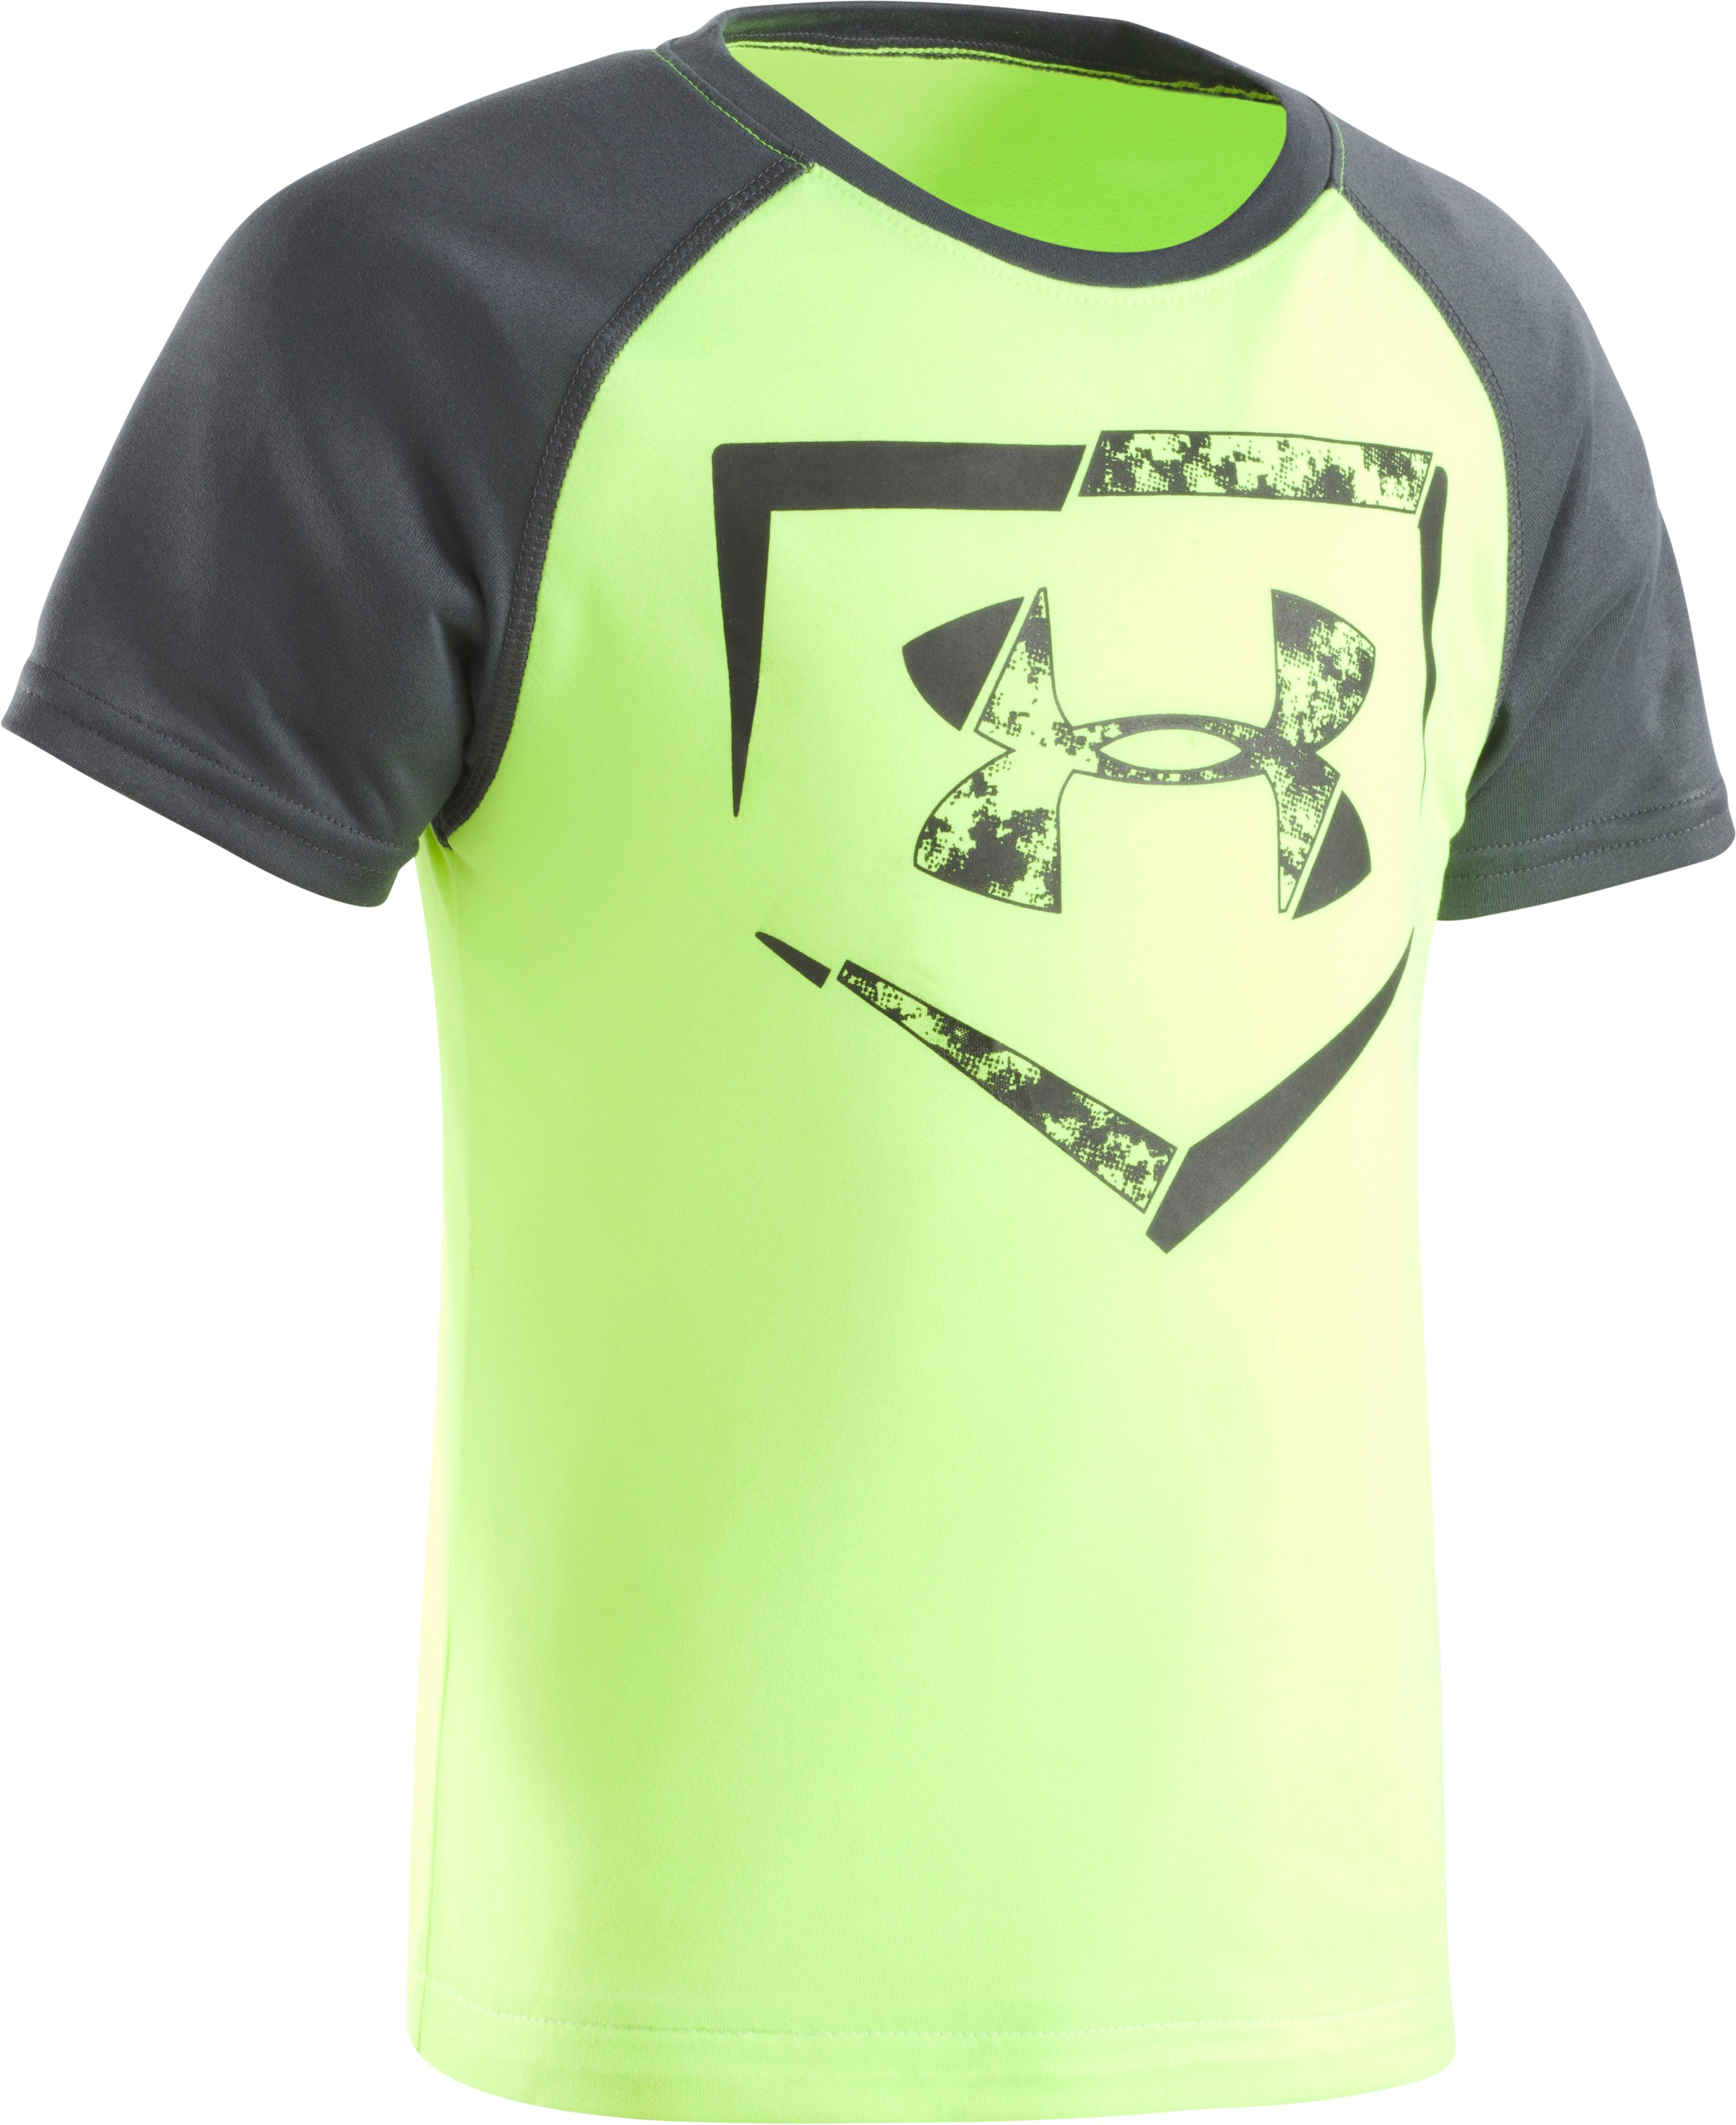 Boys' Pre-School UA Home Plate Logo Raglan Short Sleeve T-Shirt, FUEL GREEN, Laydown